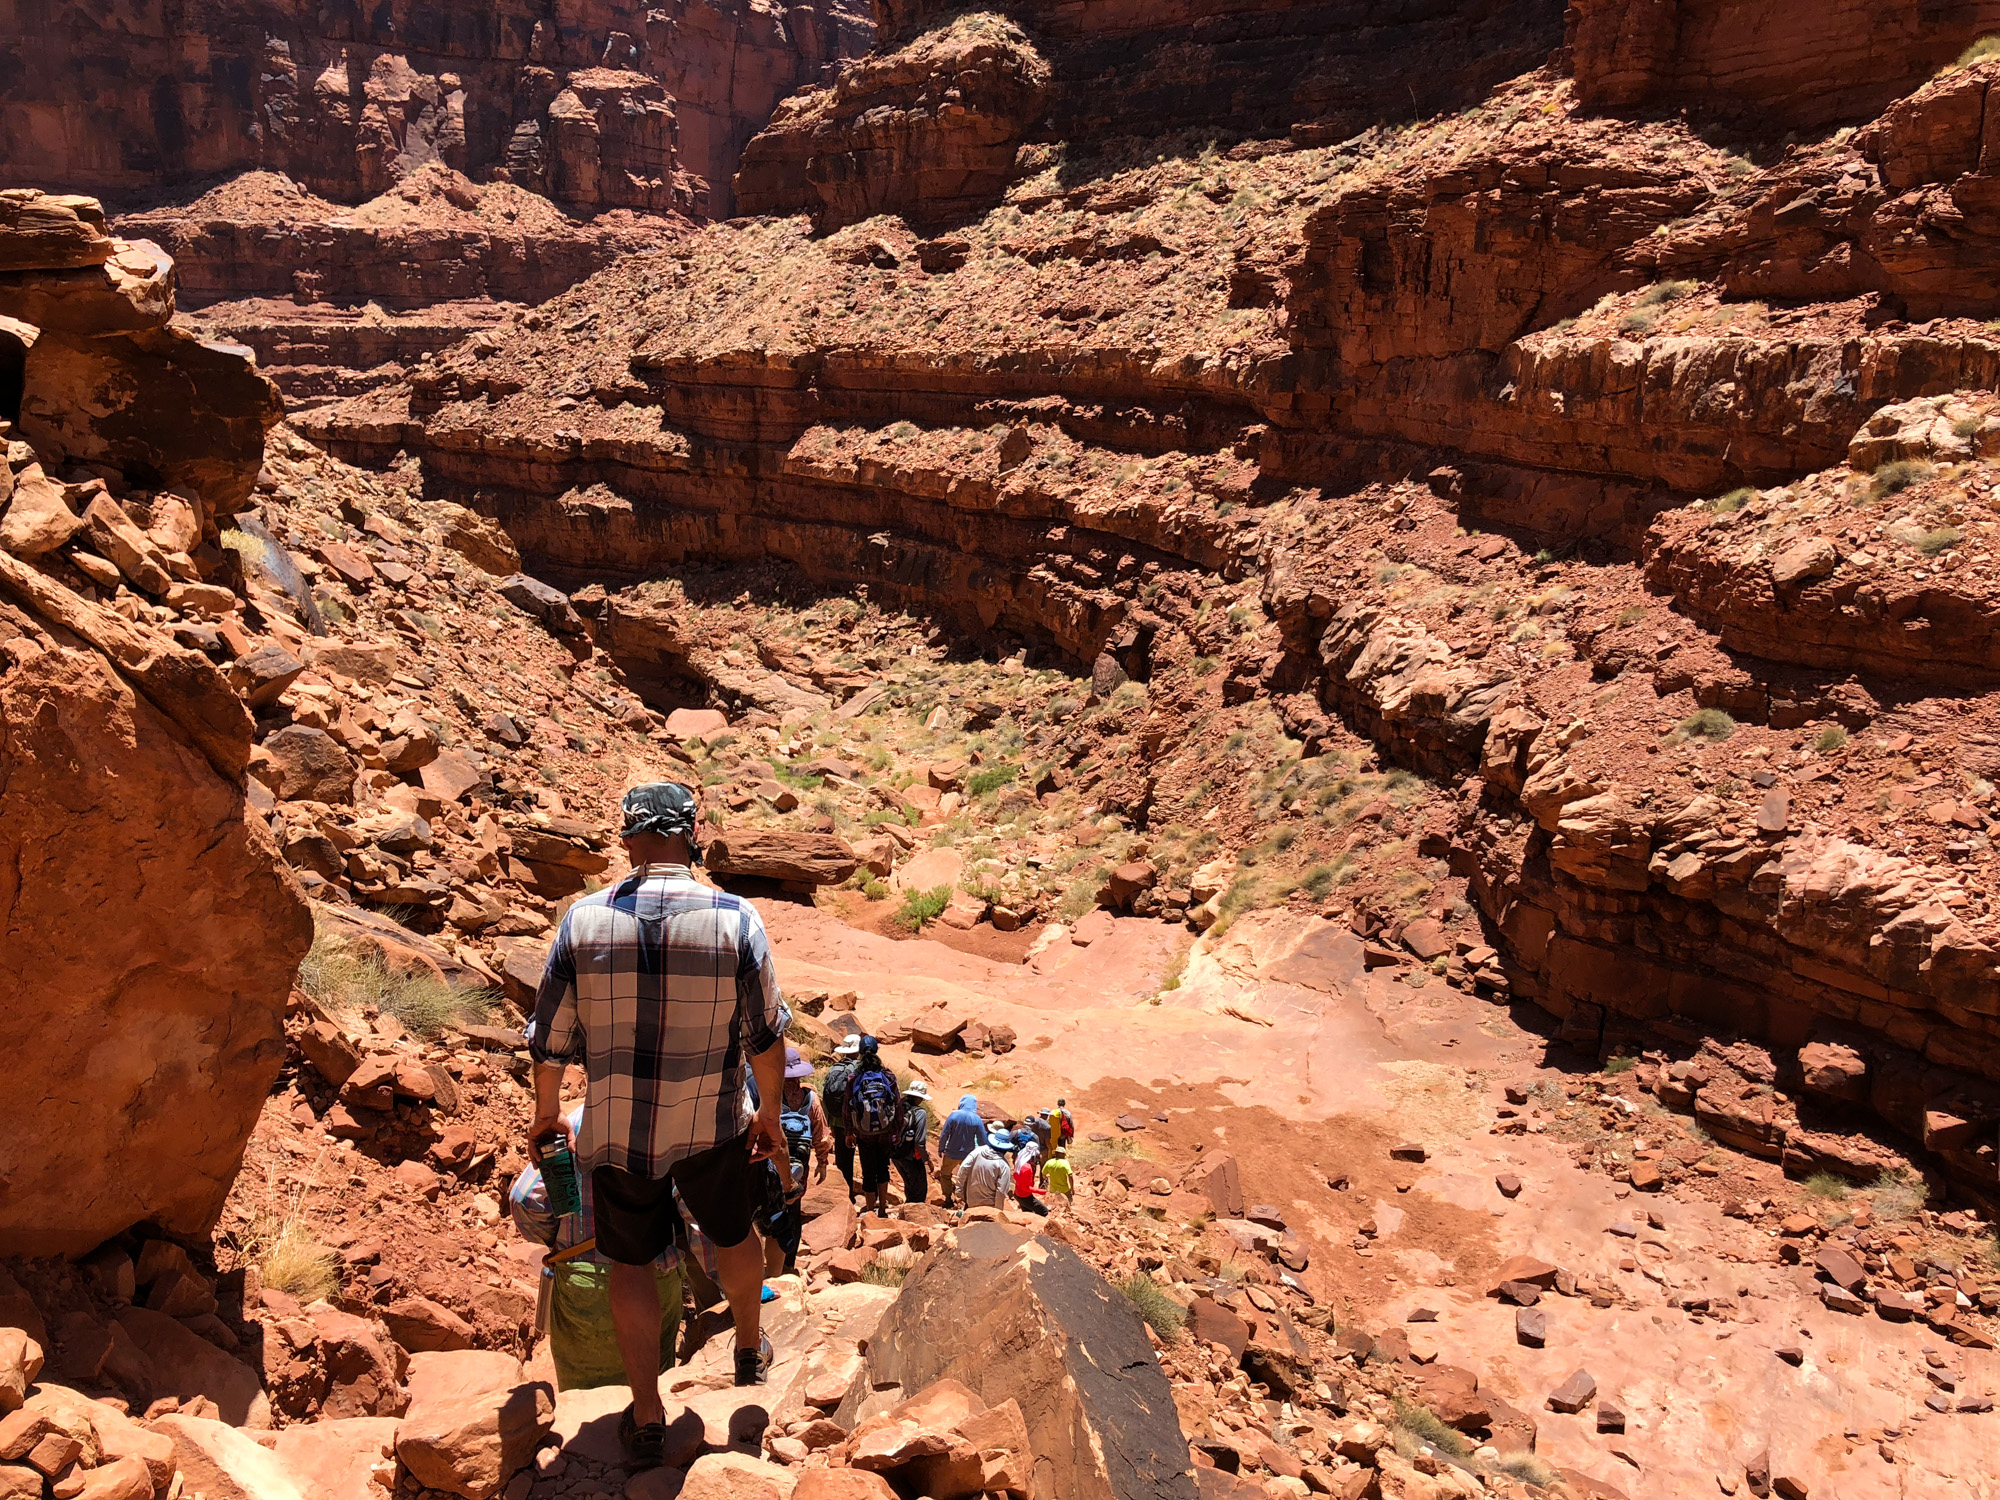 Hiking out of the slot canyon